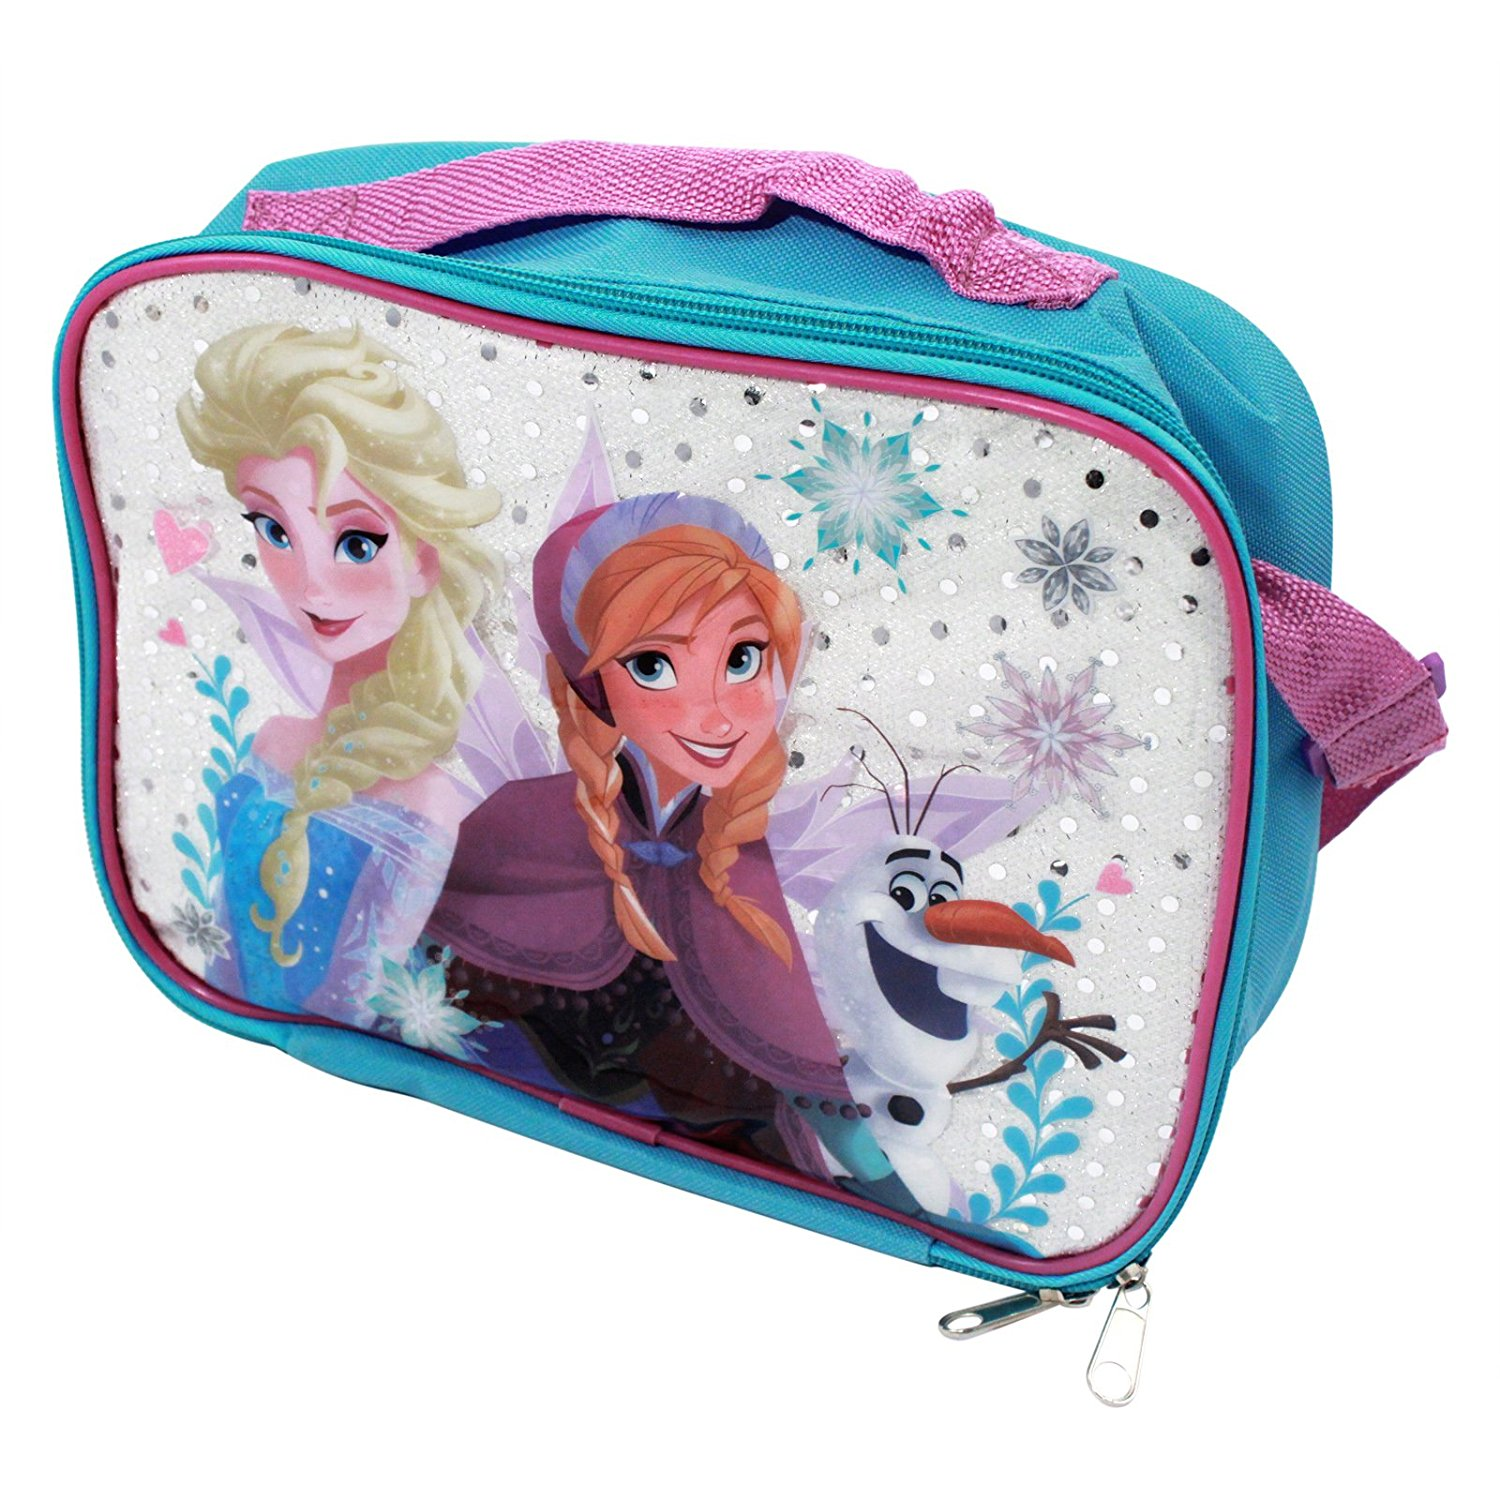 55aab784e13 Get Quotations · Disney Frozen DFB0313 Snowflakes Soft Insulated Lunch Bag